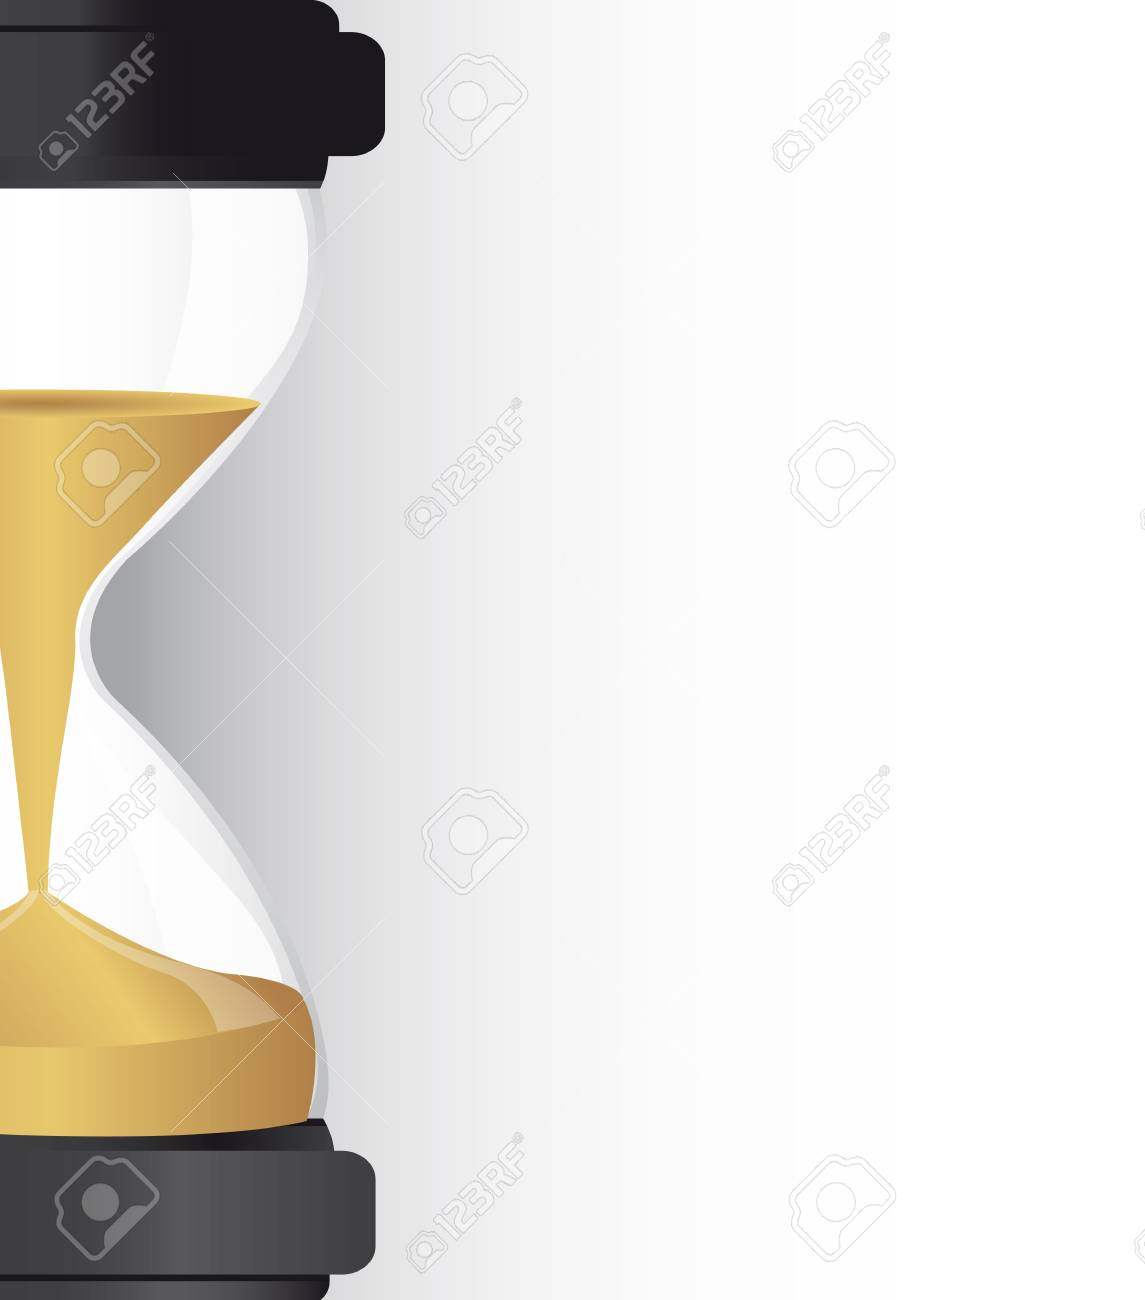 hourglass with sand with space for copy, background. vector illustration Stock Vector - 13599510